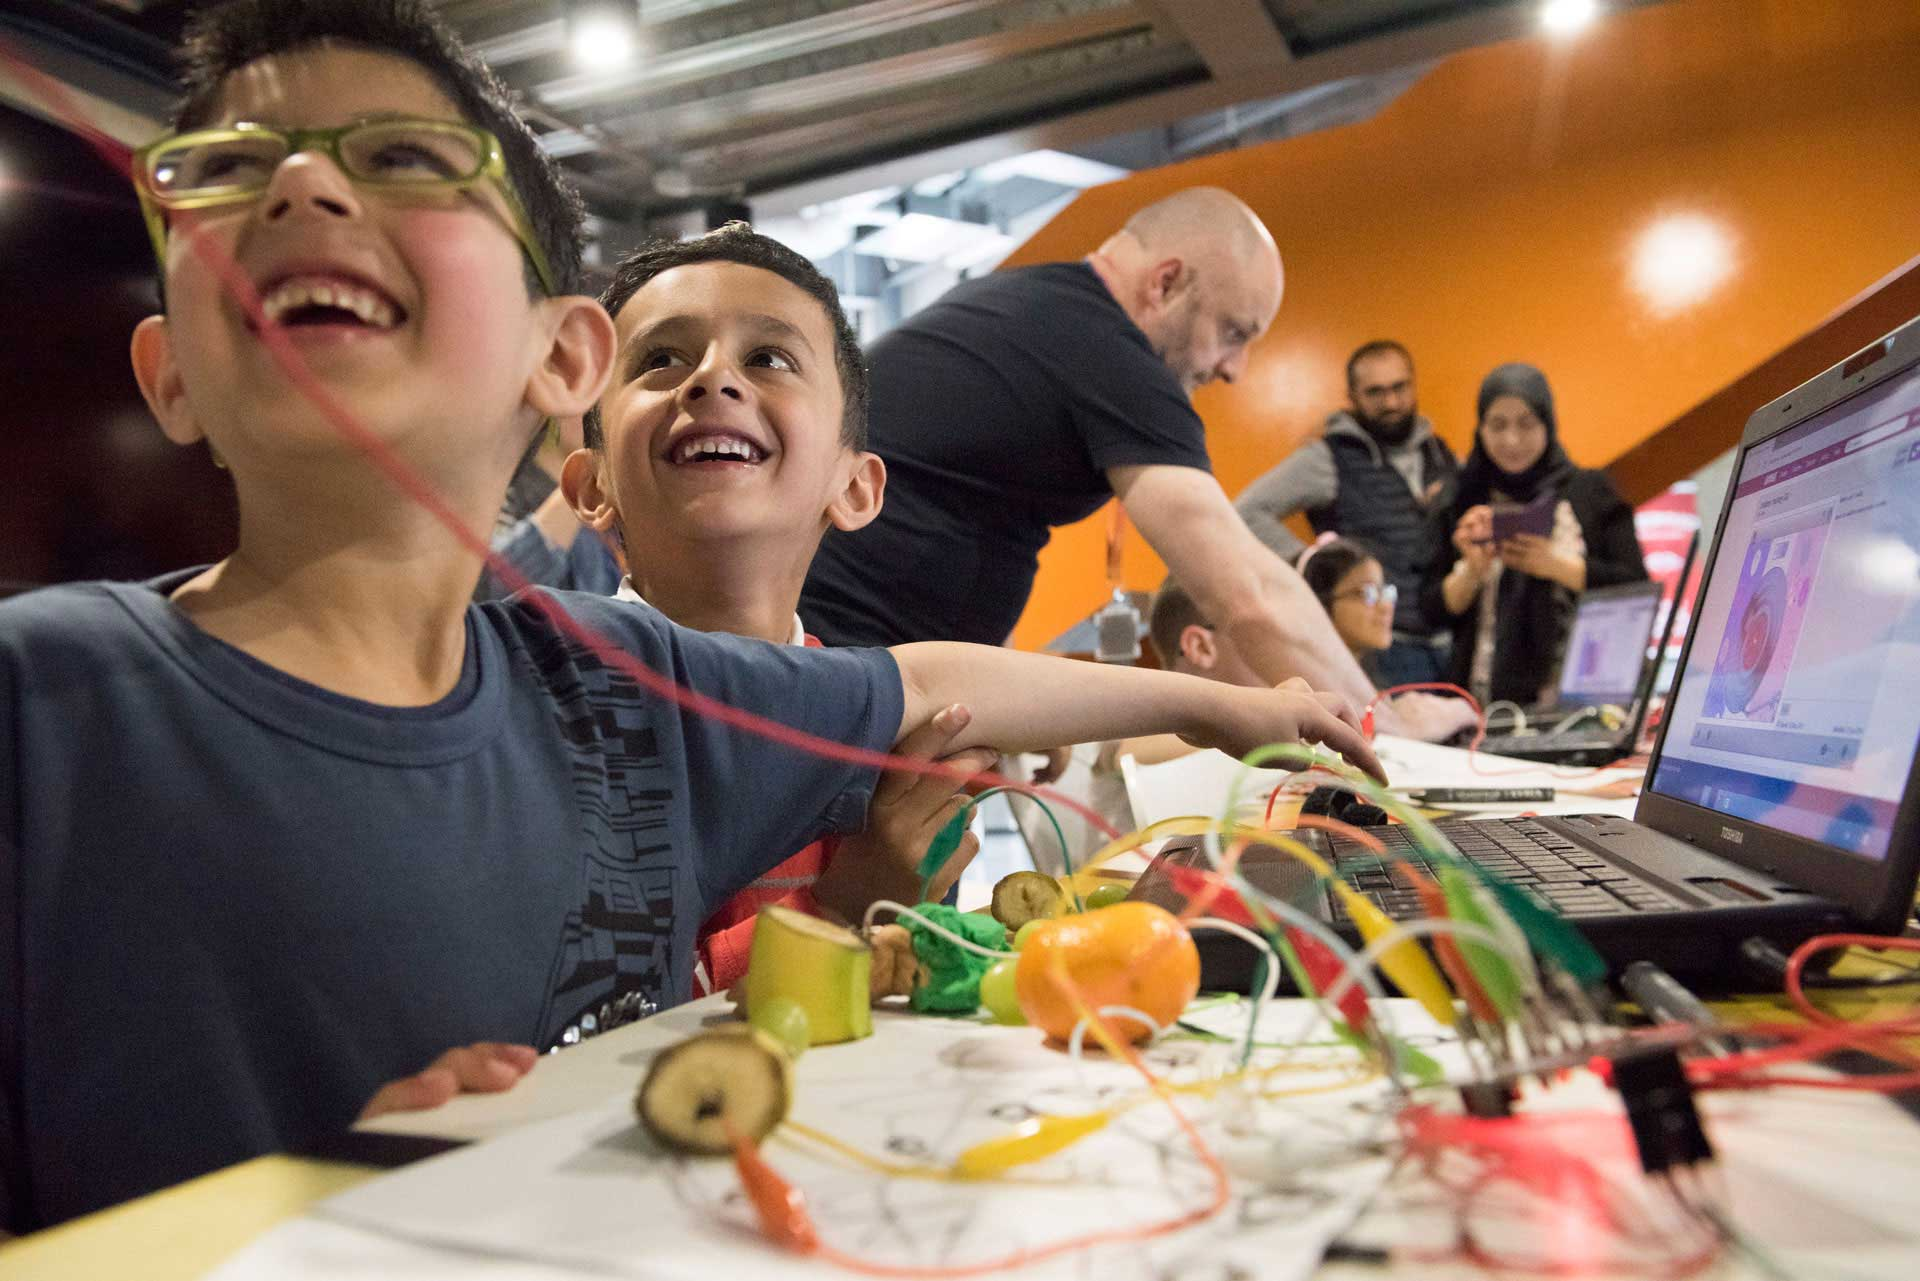 Kids Rock:  A host of family friendly activities to inspire and entertain the little ones embedded into larger events.Find out more...